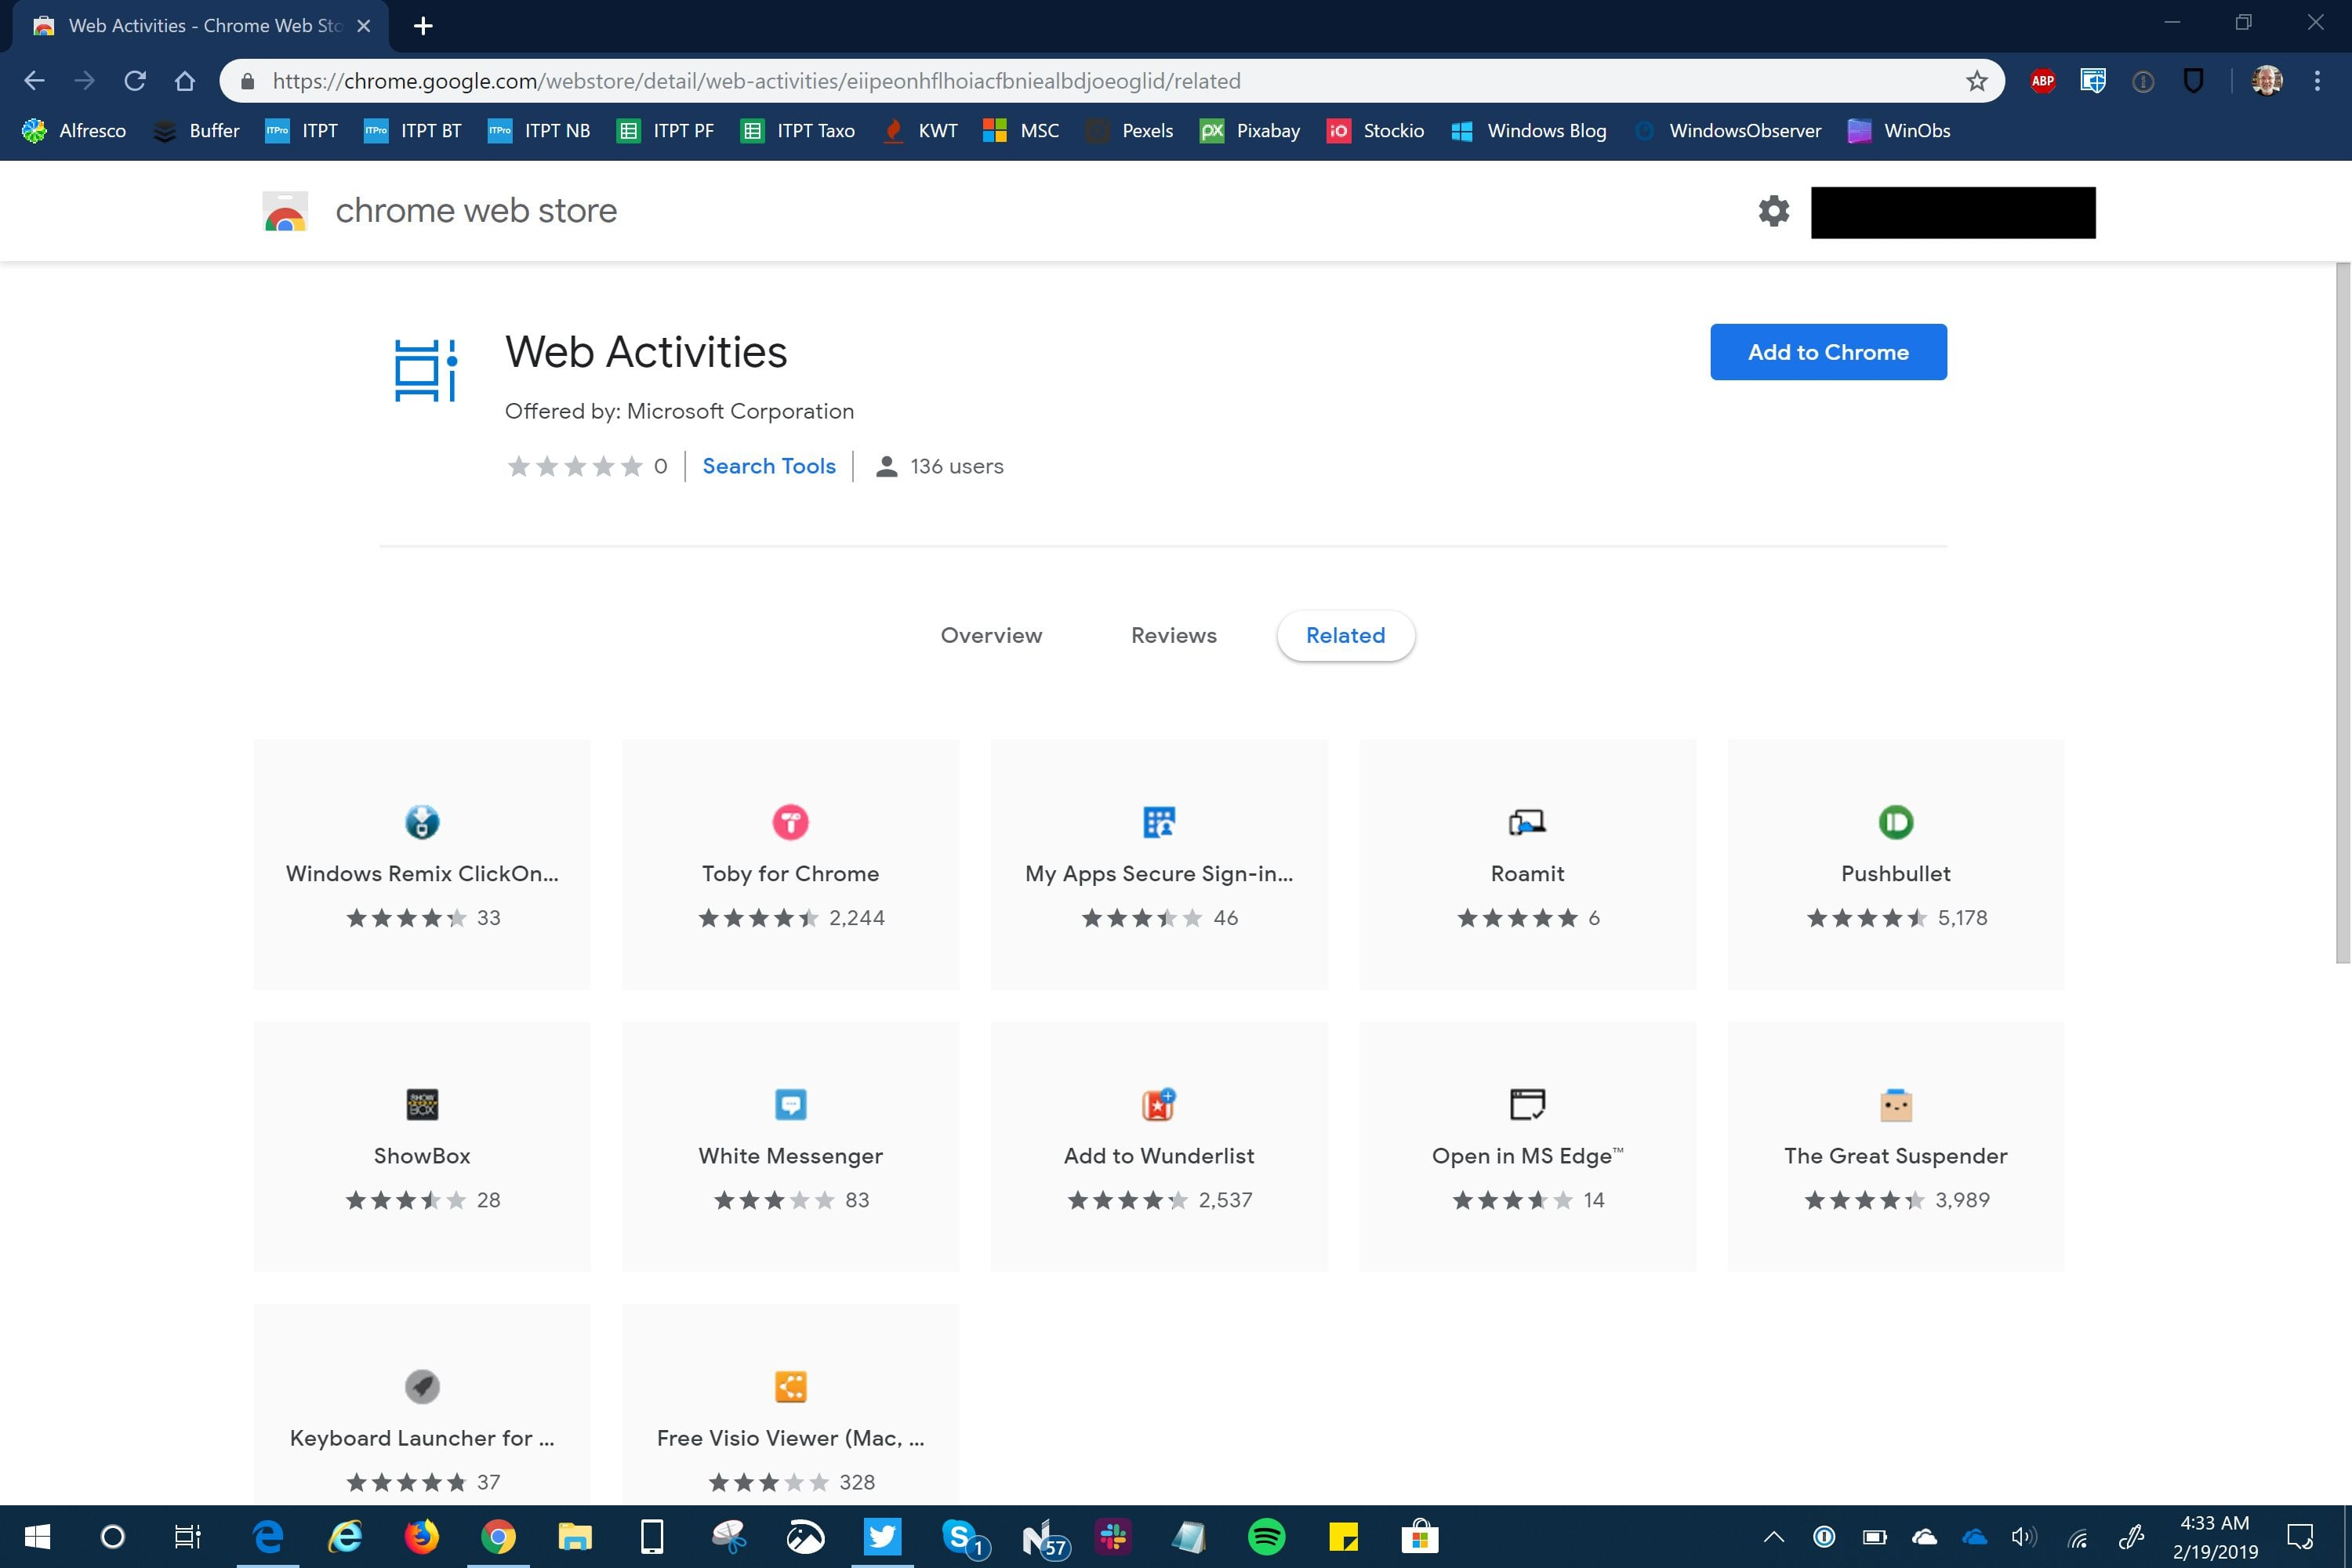 Web Activities Chrome Extension from Microsoft